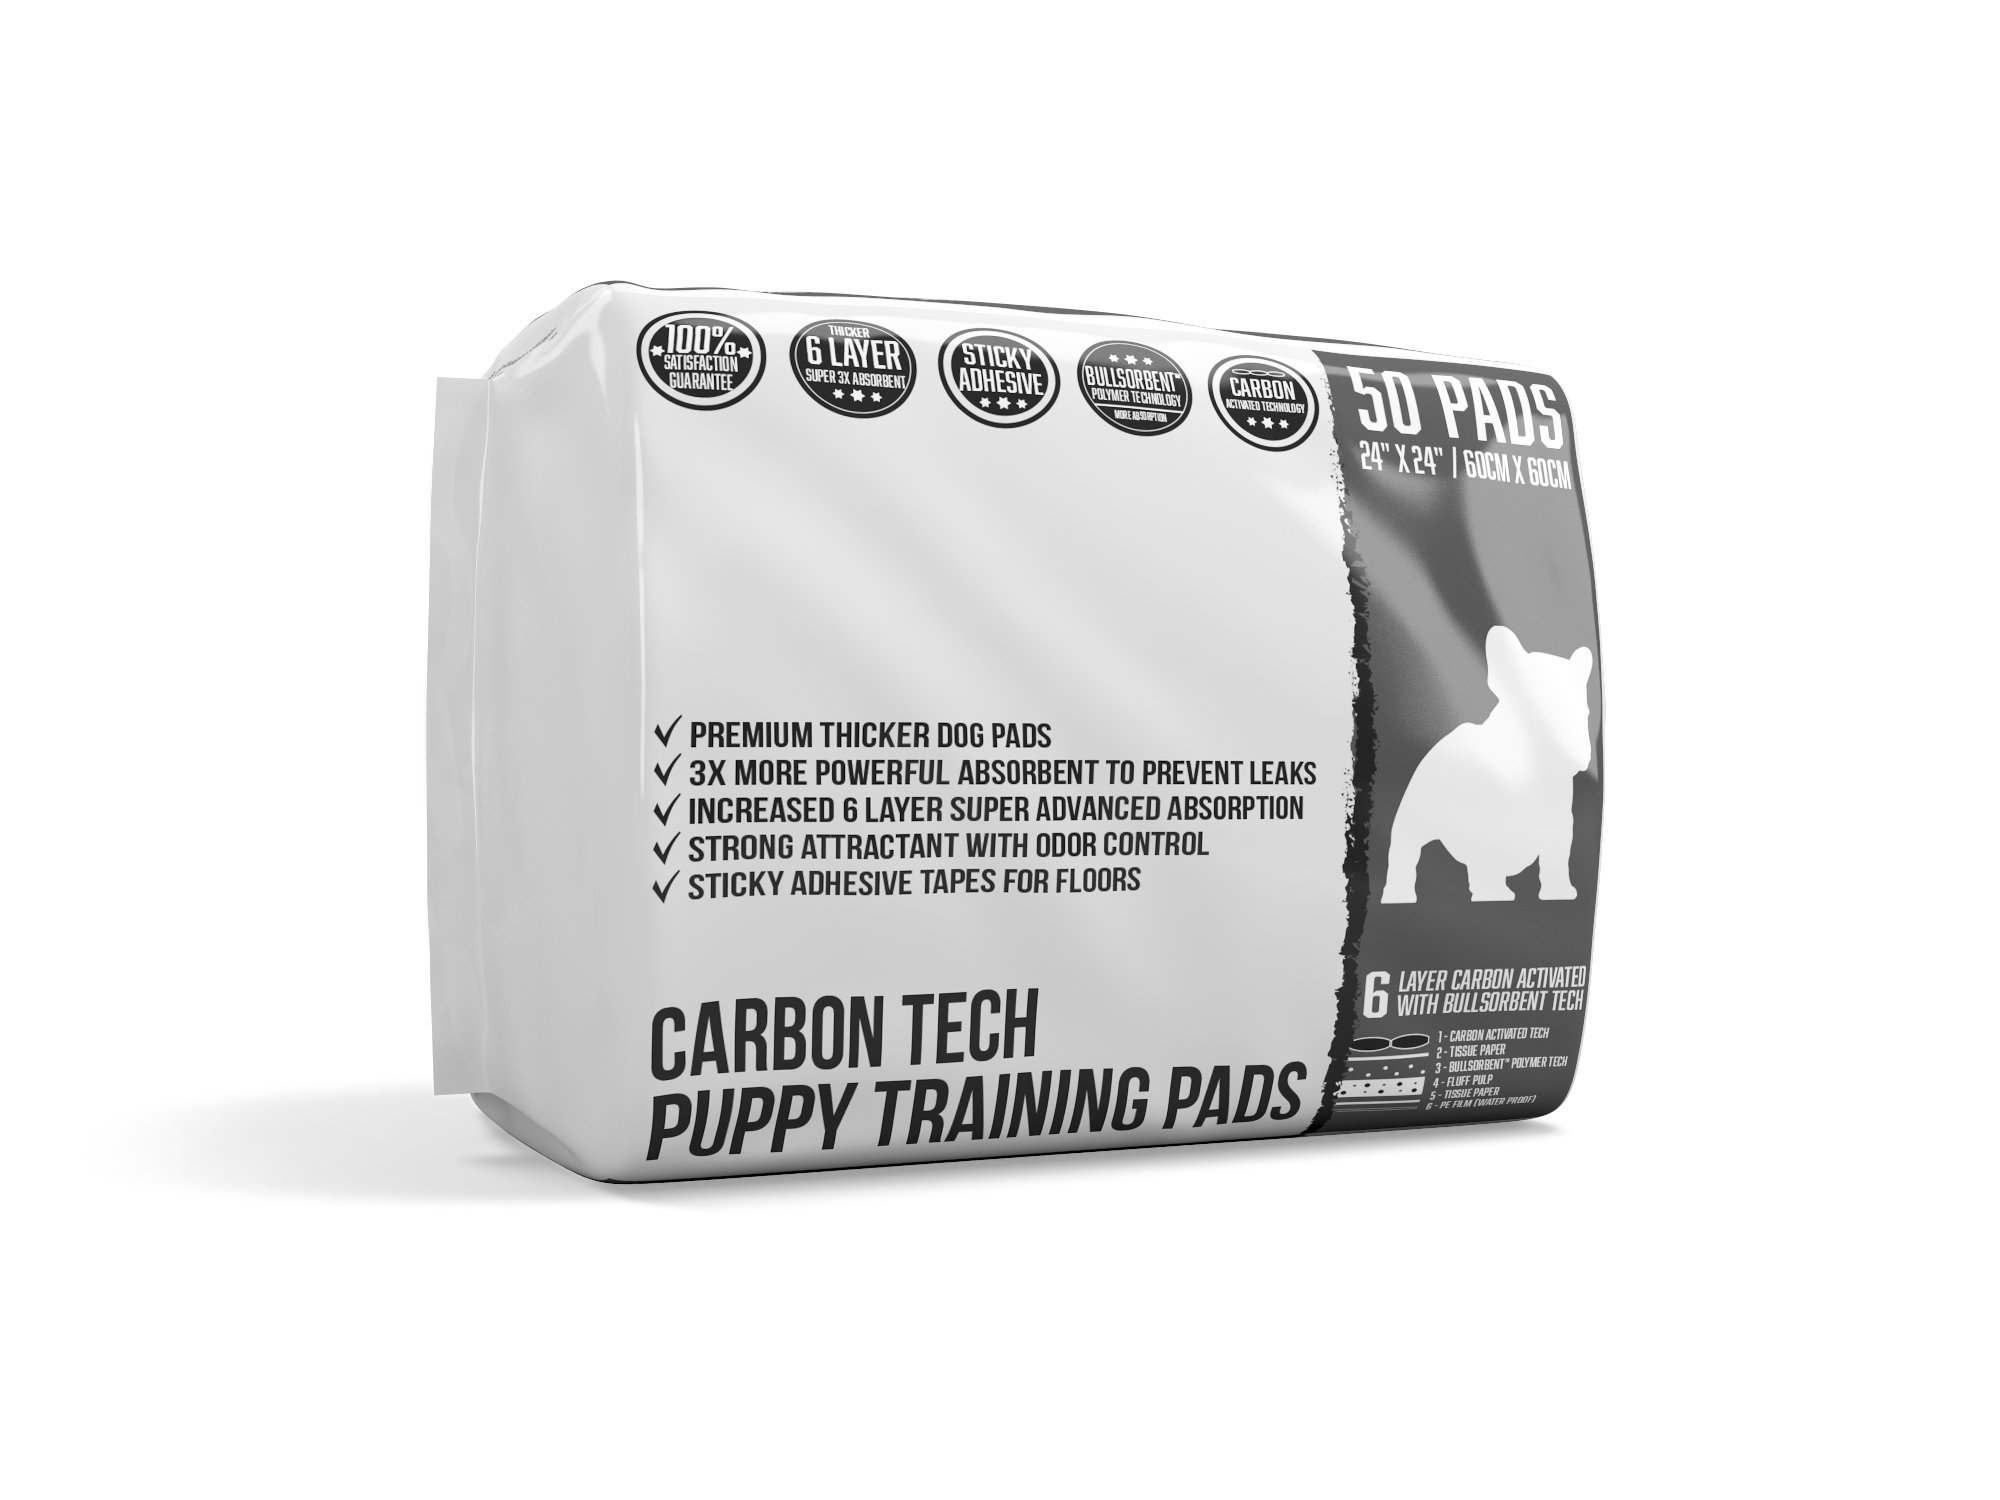 Bulldogology Carbon Black Puppy Pee Pads Adhesive Sticky Tape - Large Dog Training Wee Pads - (24x24, 50-Count)